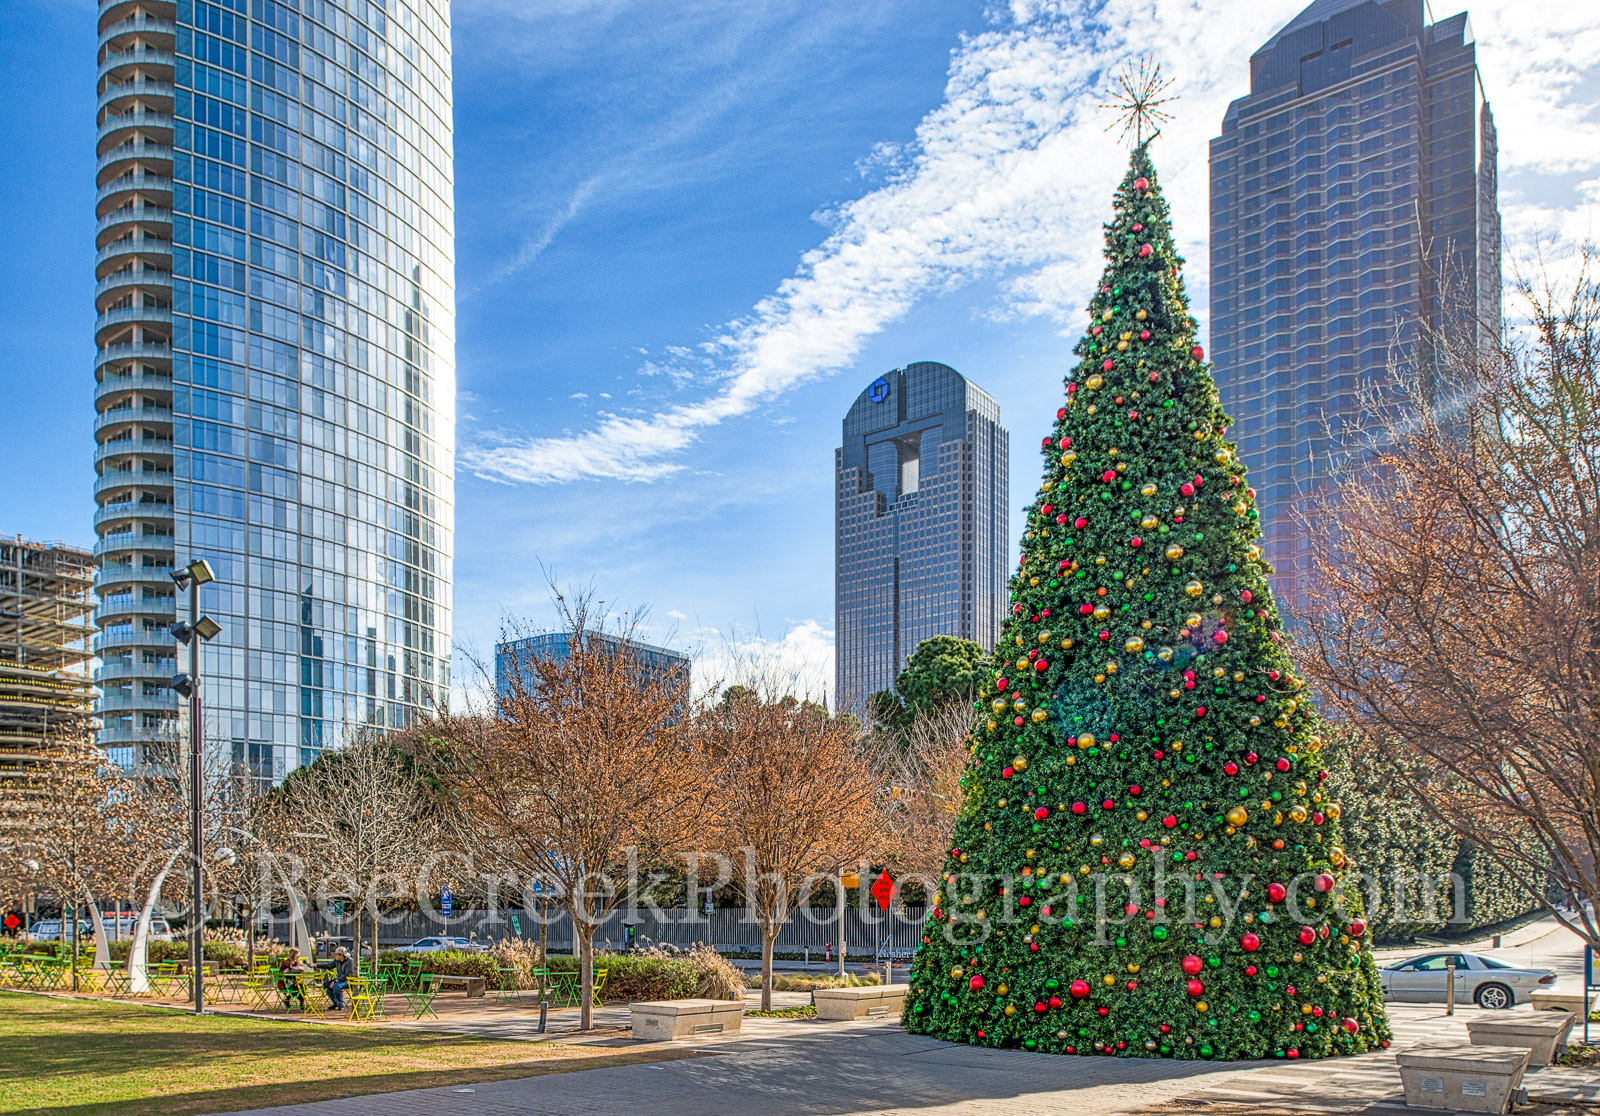 Dallas Christmas Tree with Skyline-The Christmas tree at the Klyde Warren park with the Dallas skyline in the background...